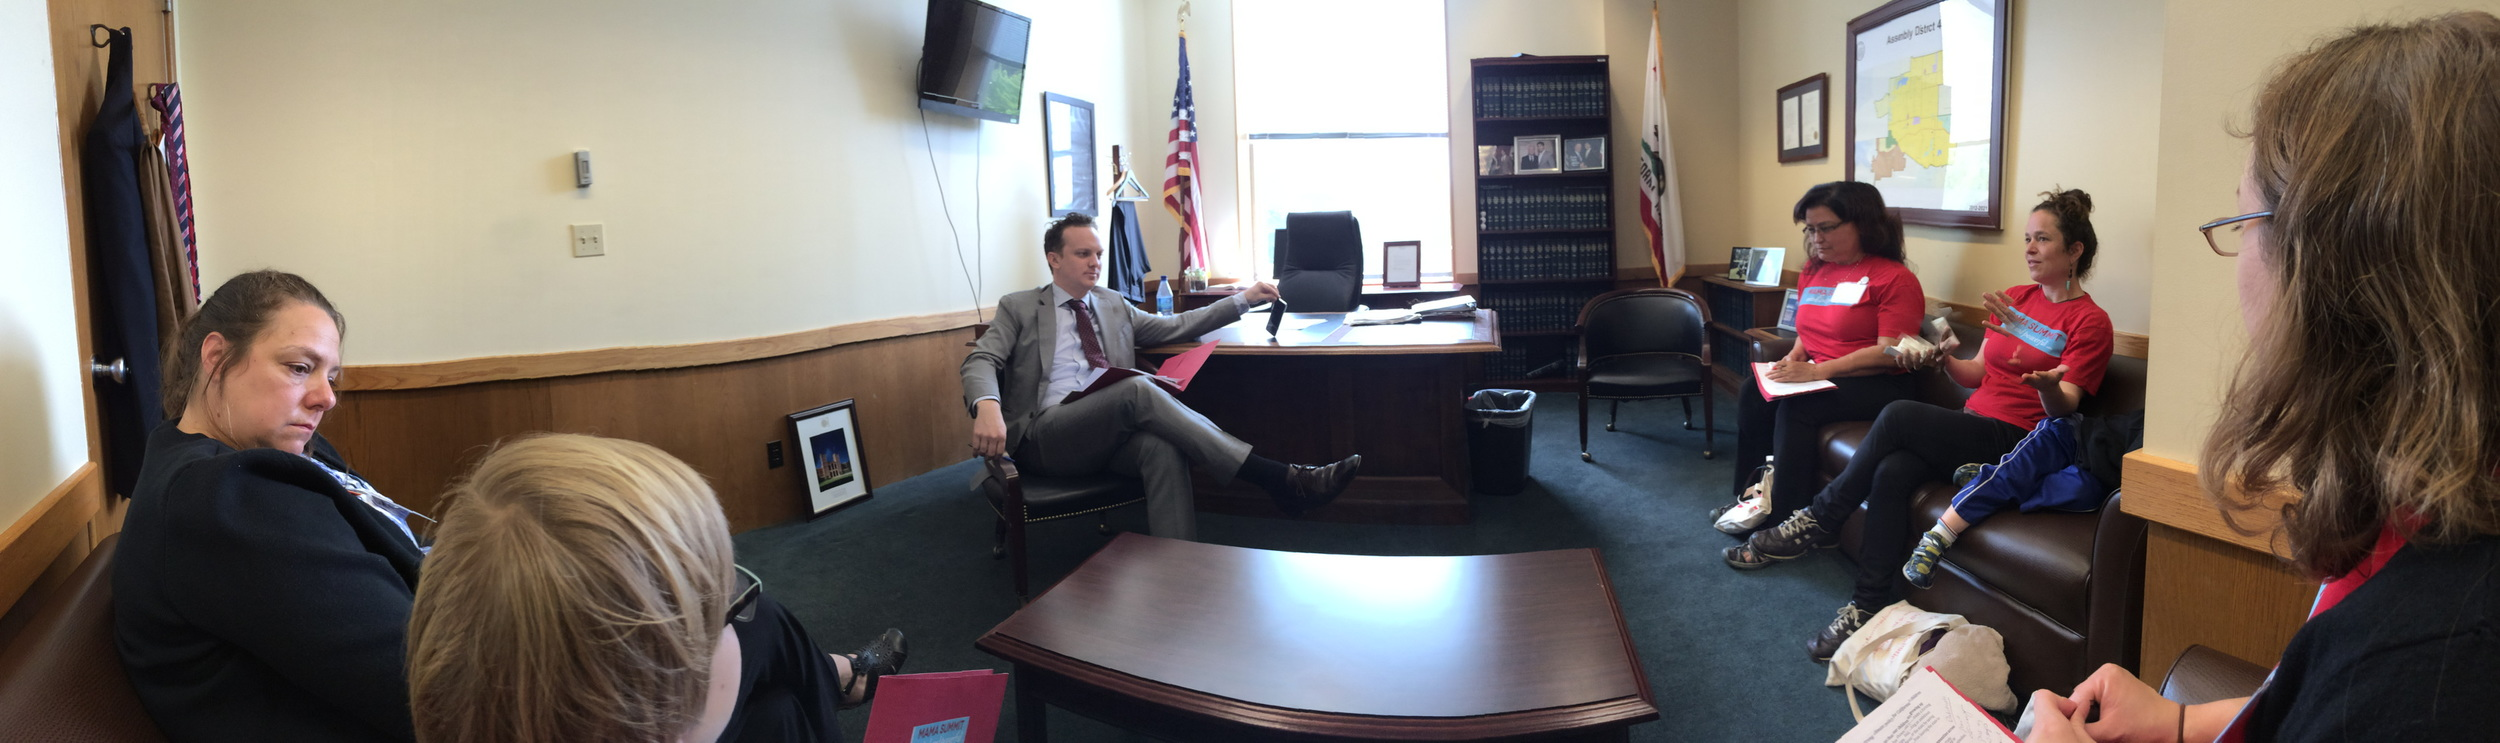 Our first meeting of the day -with Matt Powers, staff to Assemblymember Matthew Dababneh